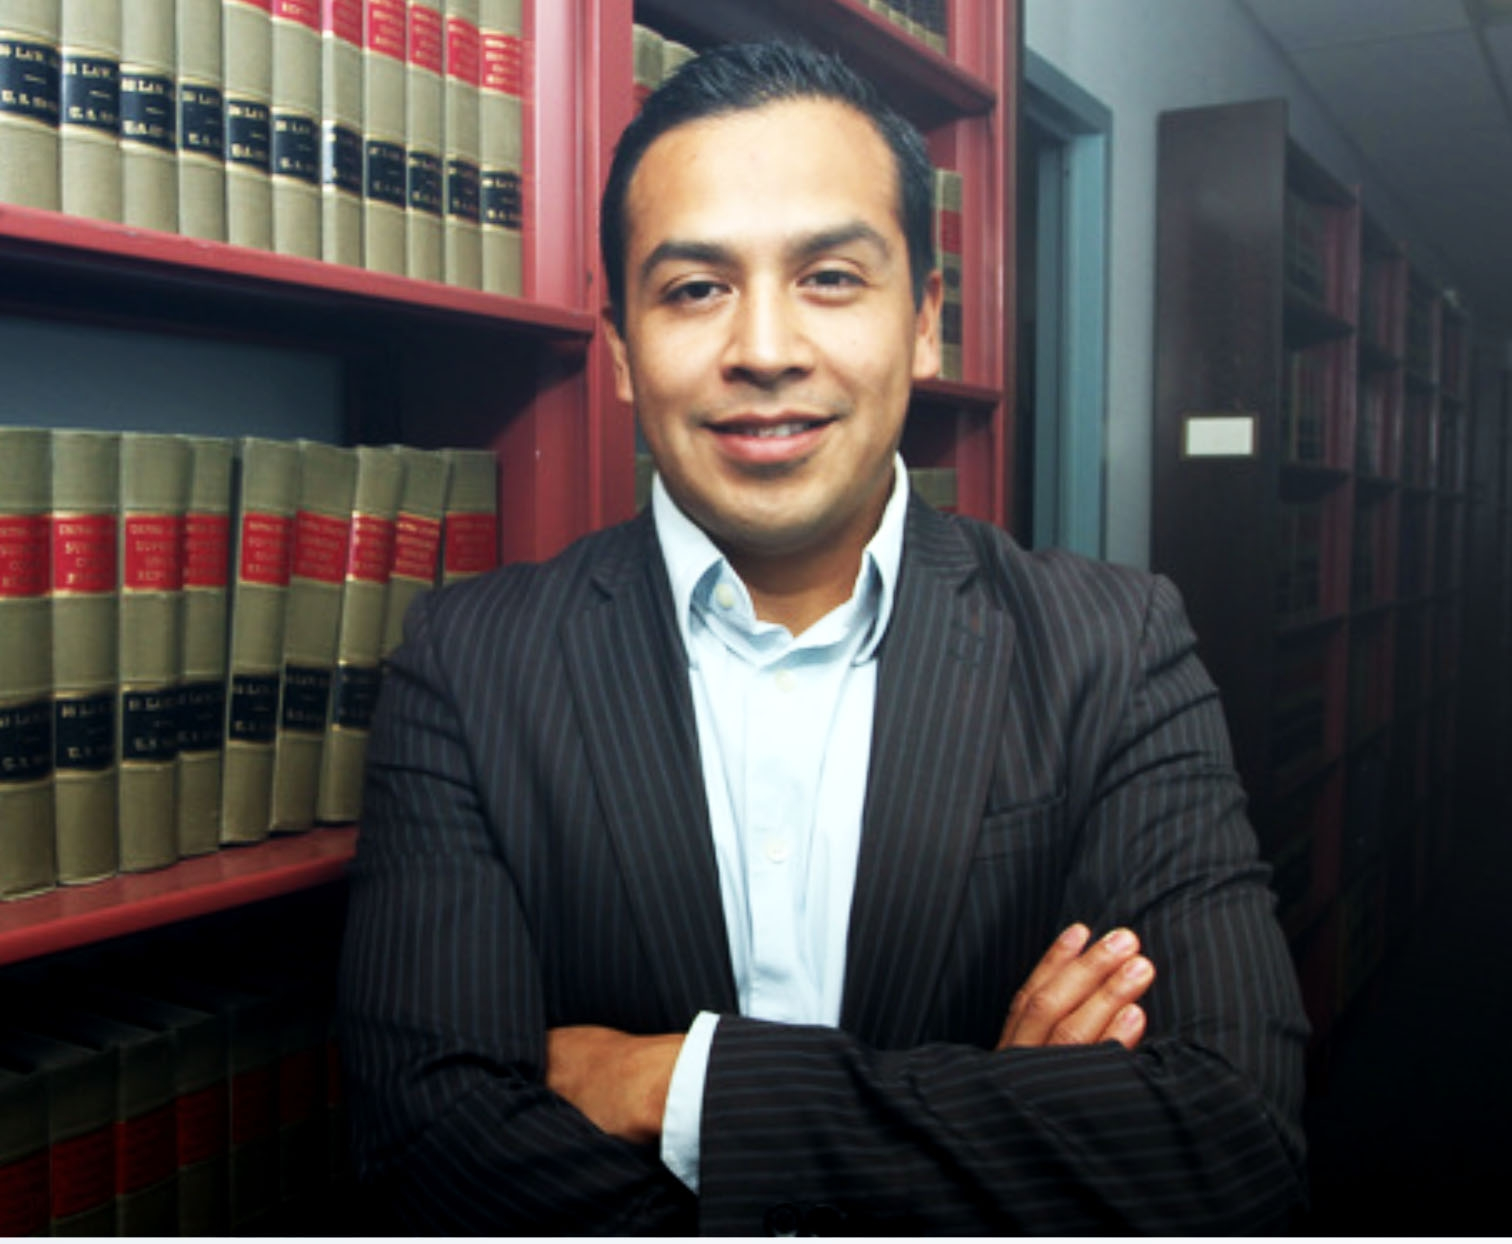 This year's keynote speaker and honoree is: Cesar Vargas, Esq.